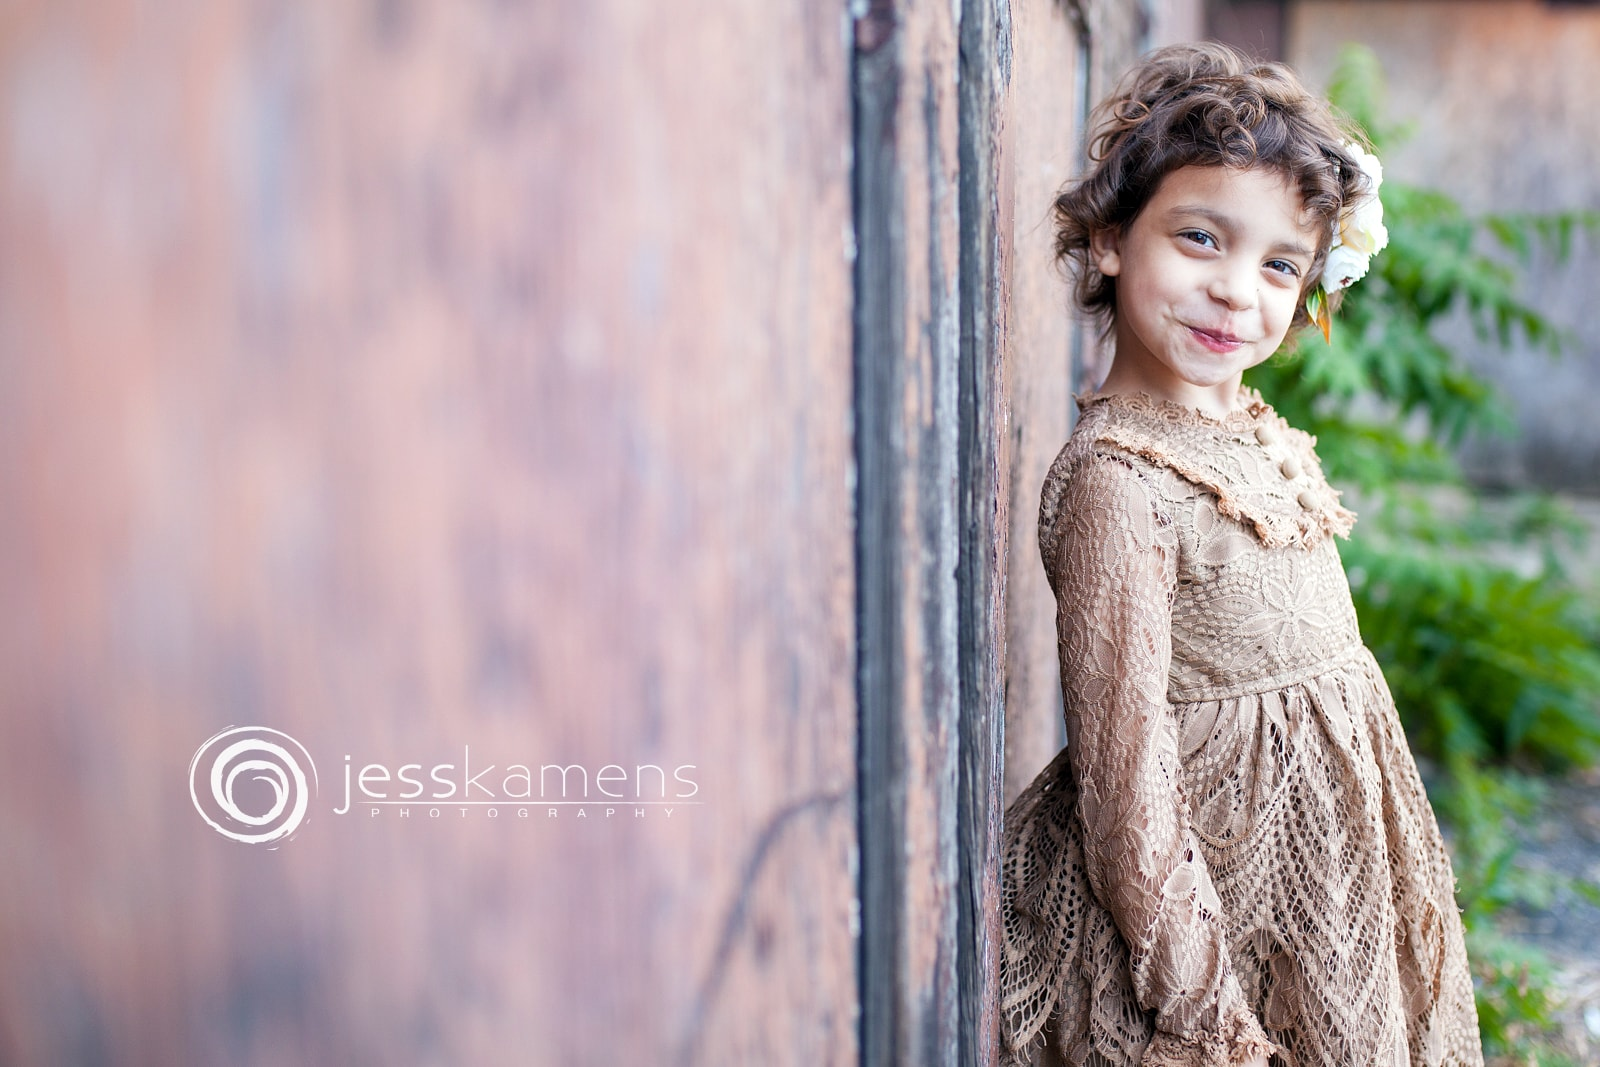 A stunning, sweet girl leaning against a rusty wall with a beautiful, lace, brown dress on. She has a flower in her hair.